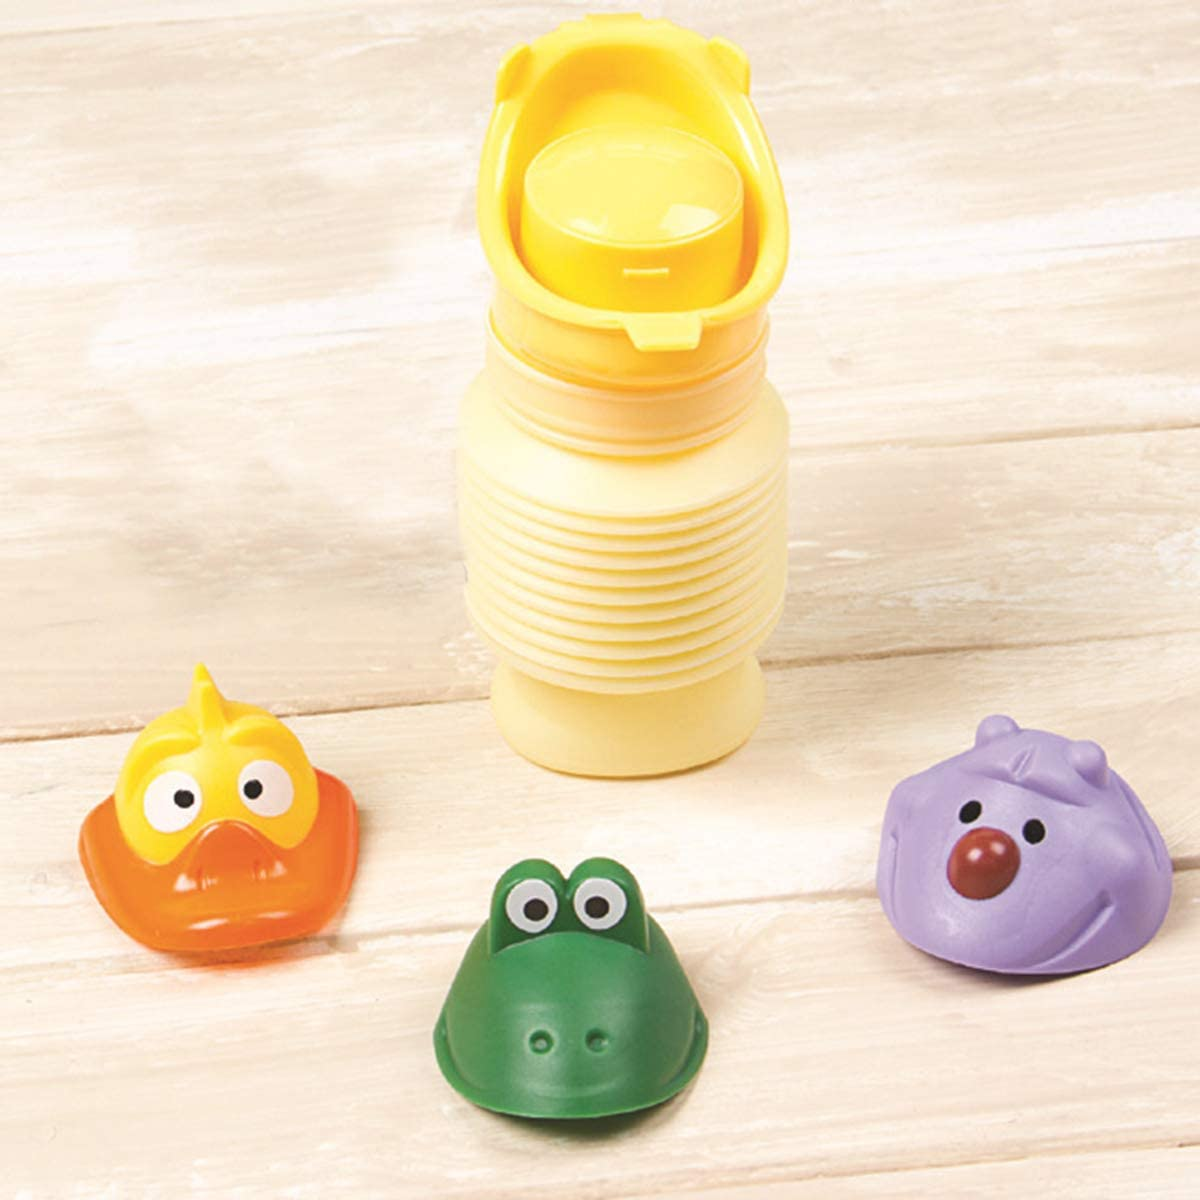 Yudanny Portable Stretchable Child Camping Toilet Potty Travel Emergency Urinal Pee Bottle for Kids Girls Boys